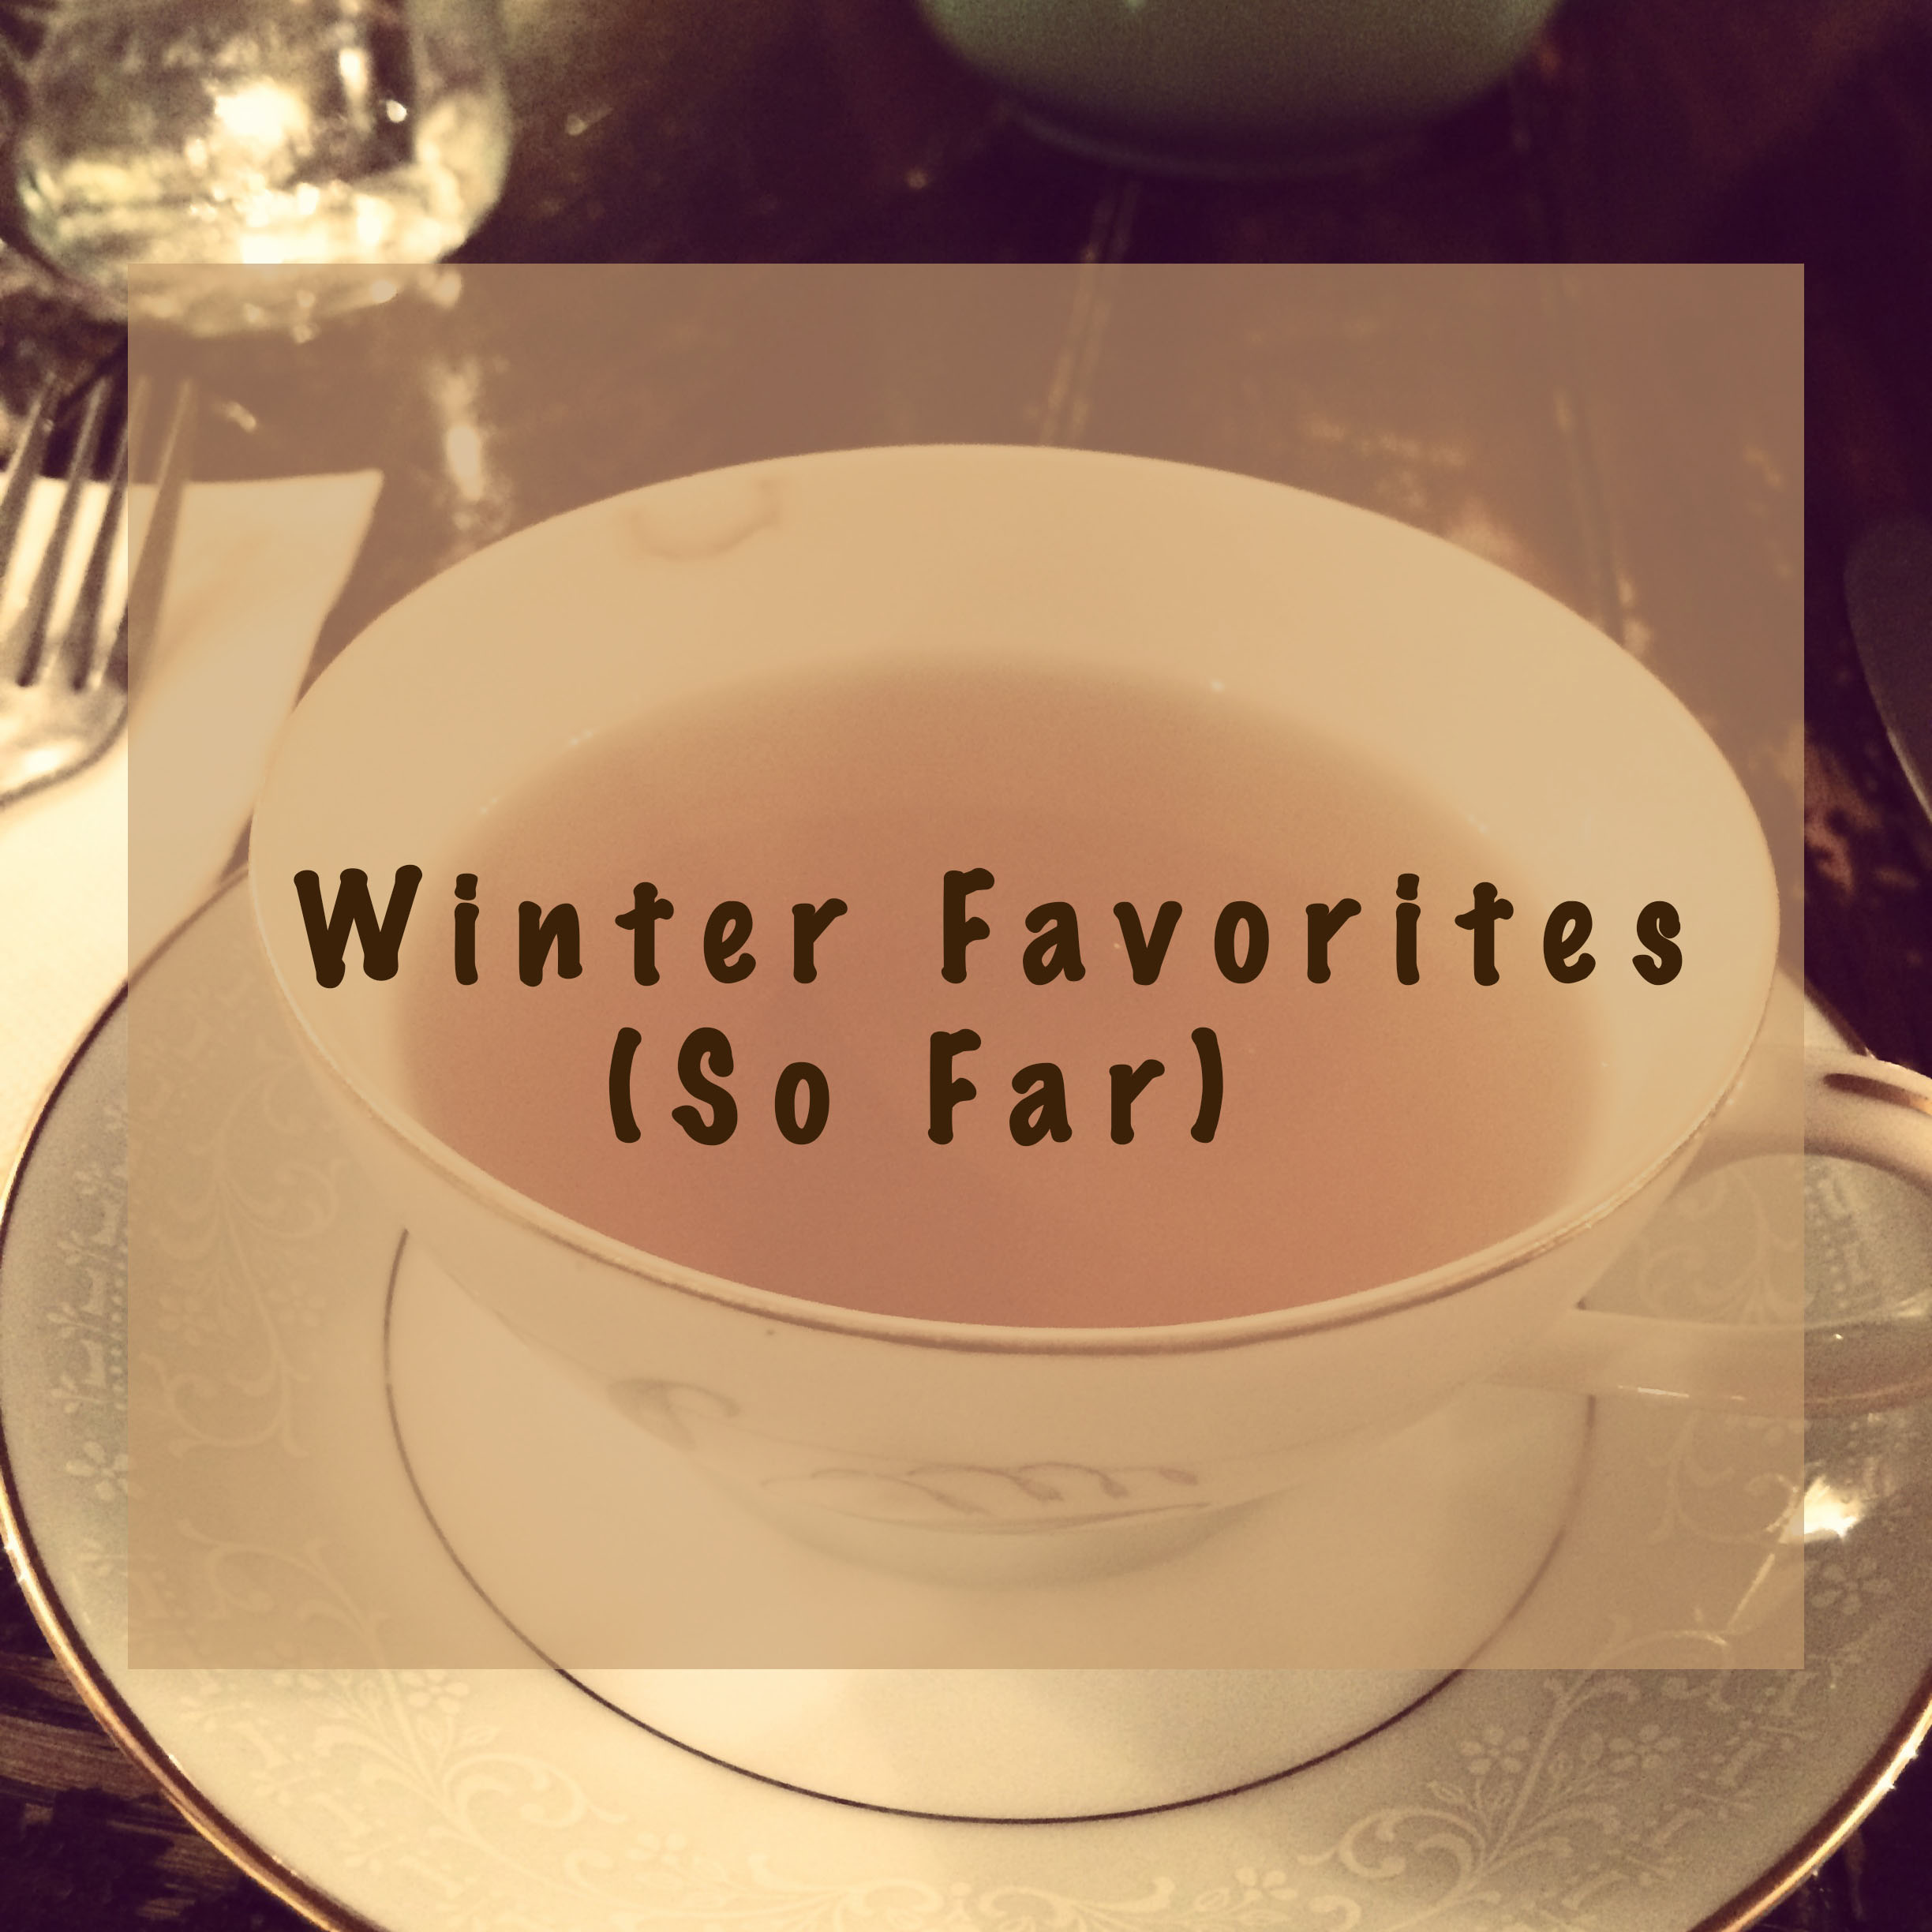 Winter Favorites.jpg